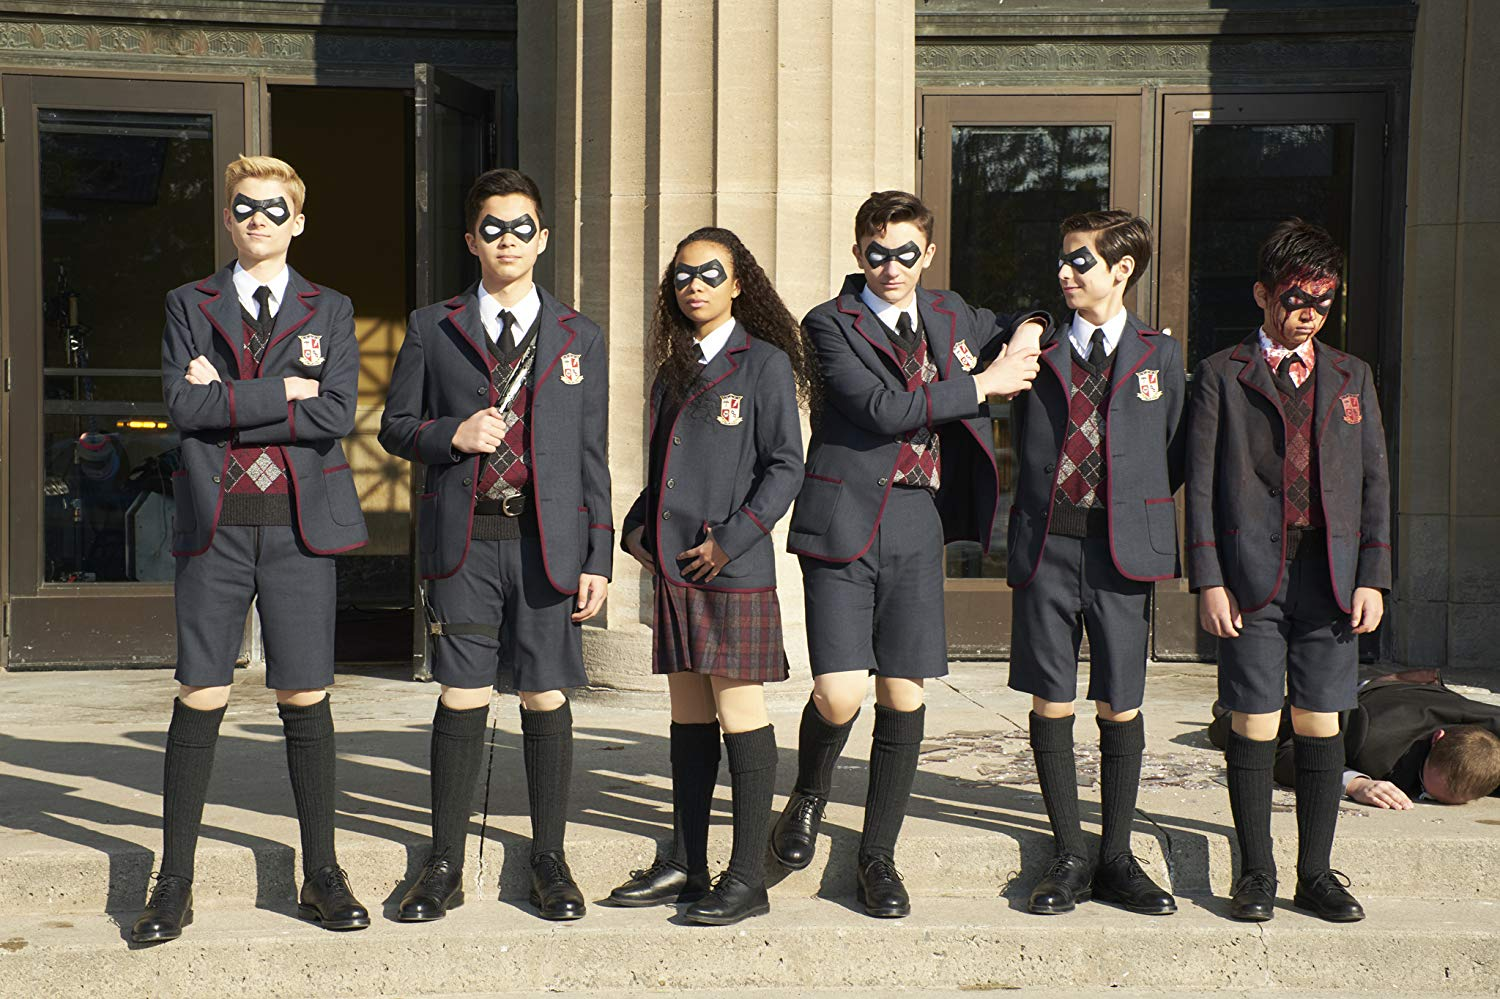 Dante Albidone, Aidan Gallagher, Cameron Brodeur, Eden Cupid, Ethan Hwang, and Blake Talabis in The Umbrella Academy (2019) Source: IMDB